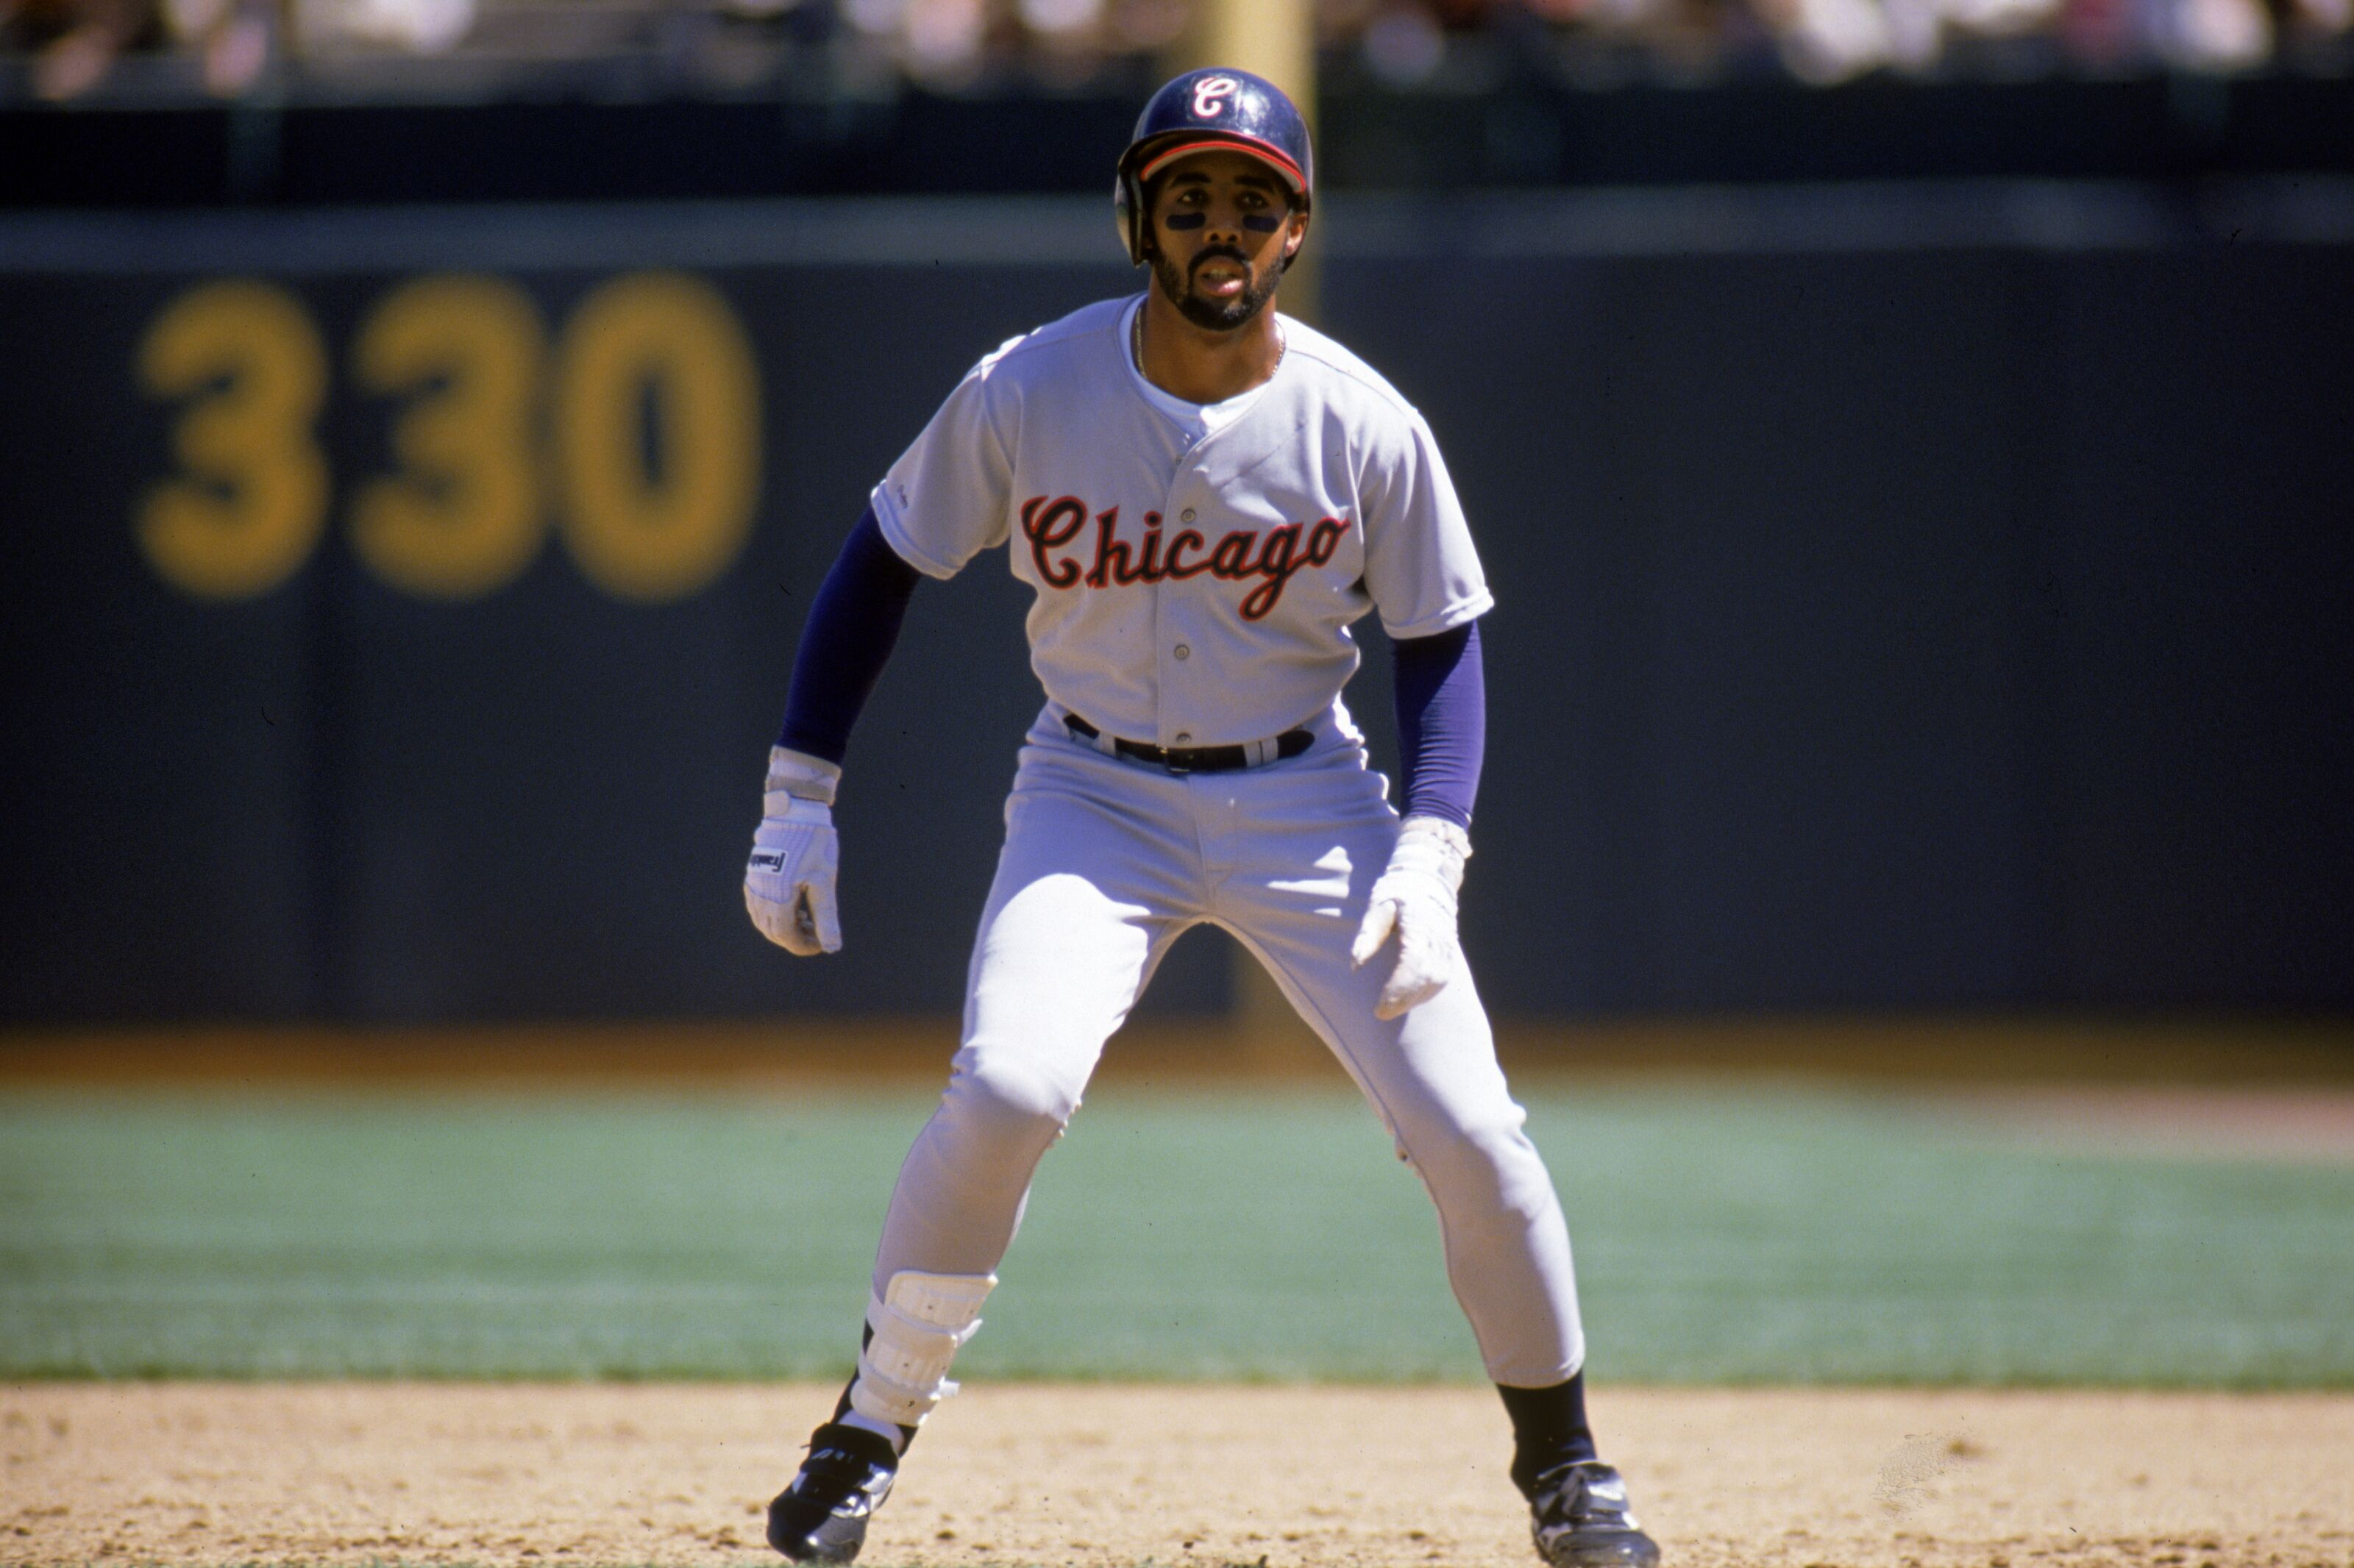 Chicago White Sox: Harold Baines is a Hall of Famer